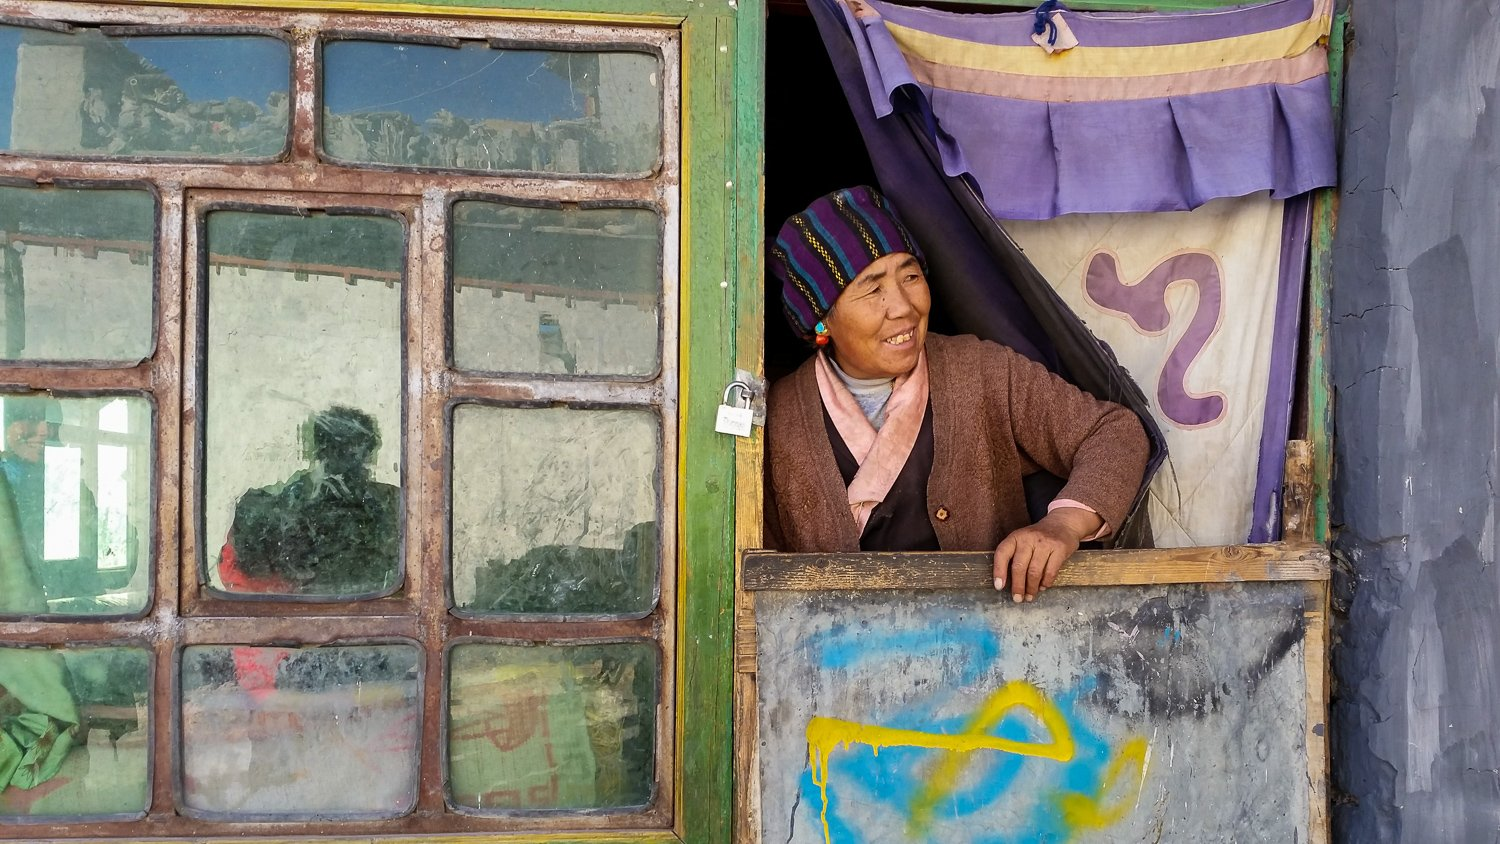 Tibet photography, Ira Block, National Geographic